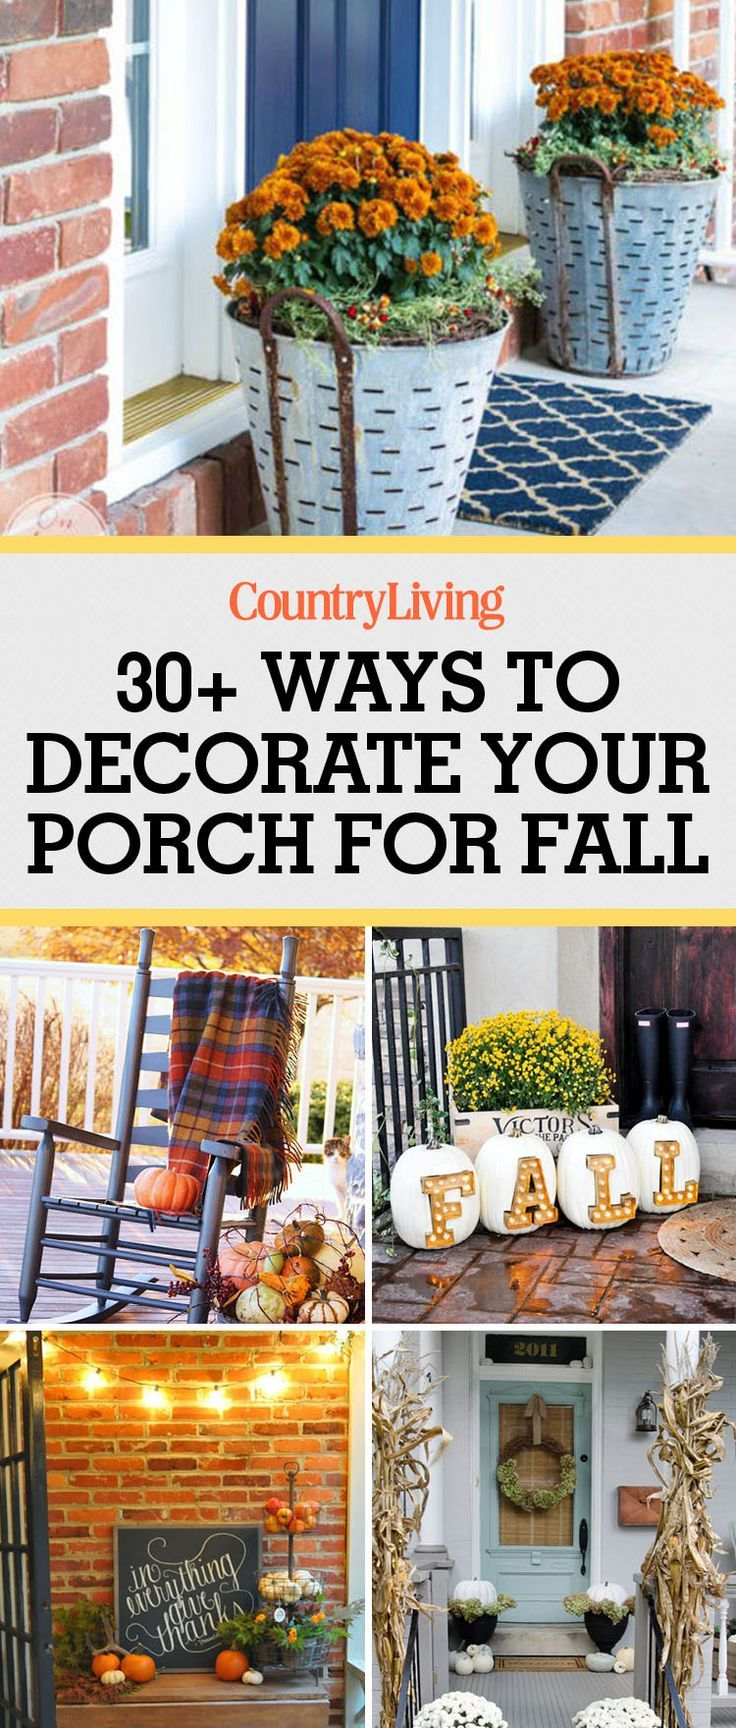 cool Save these fall porch decorations for later by pinning this image and... by http://www.best-100-home-decorpics.club/decorating-ideas/save-these-fall-porch-decorationsnbspfor-later-by-pinning-this-image-and/